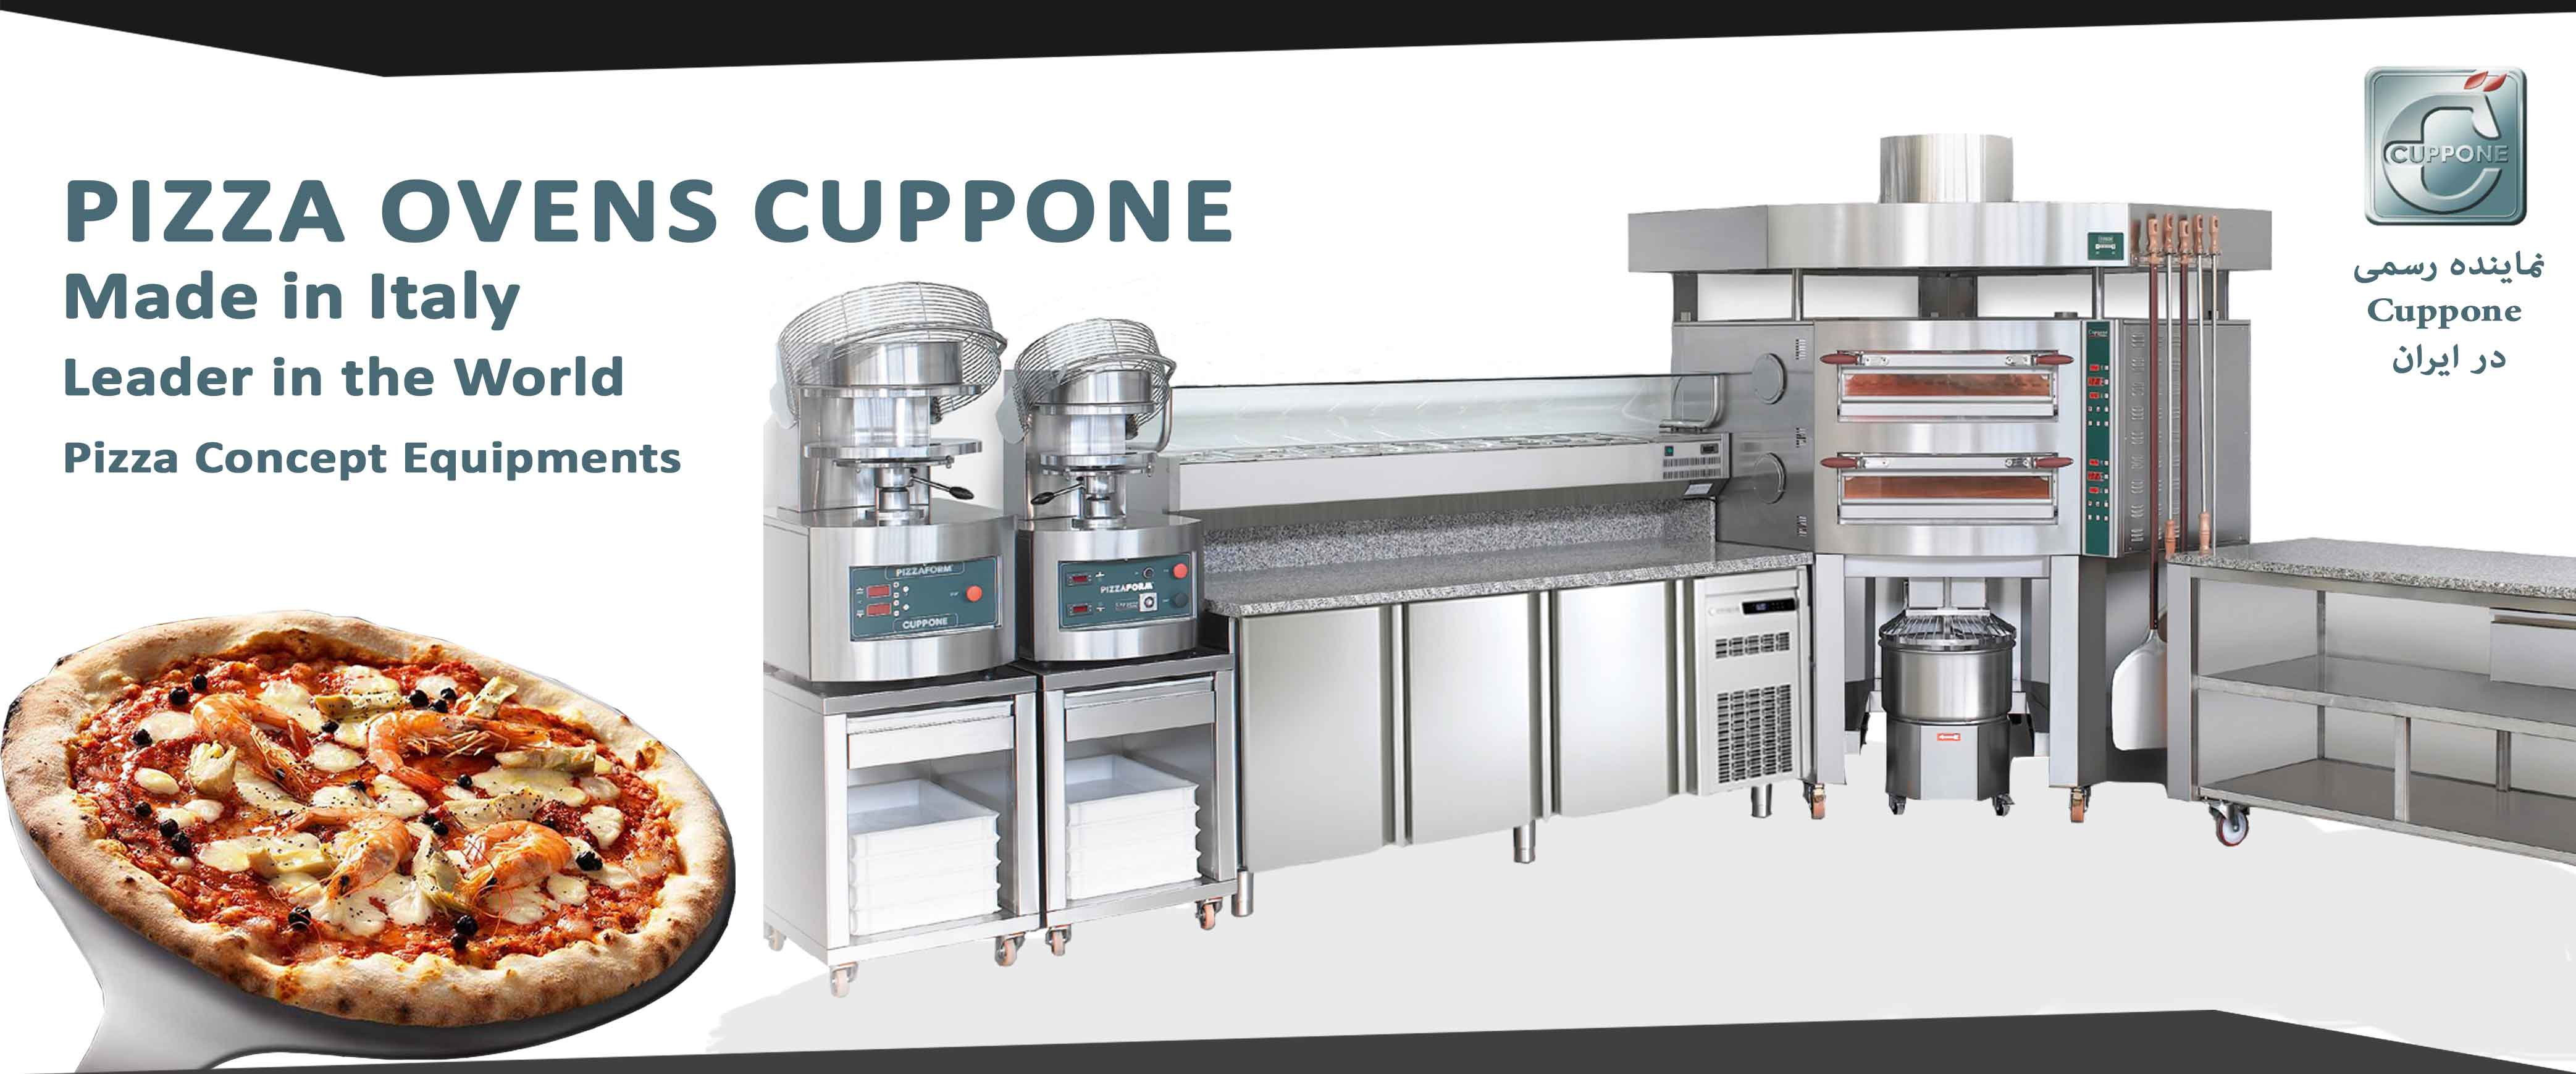 Cuppone all